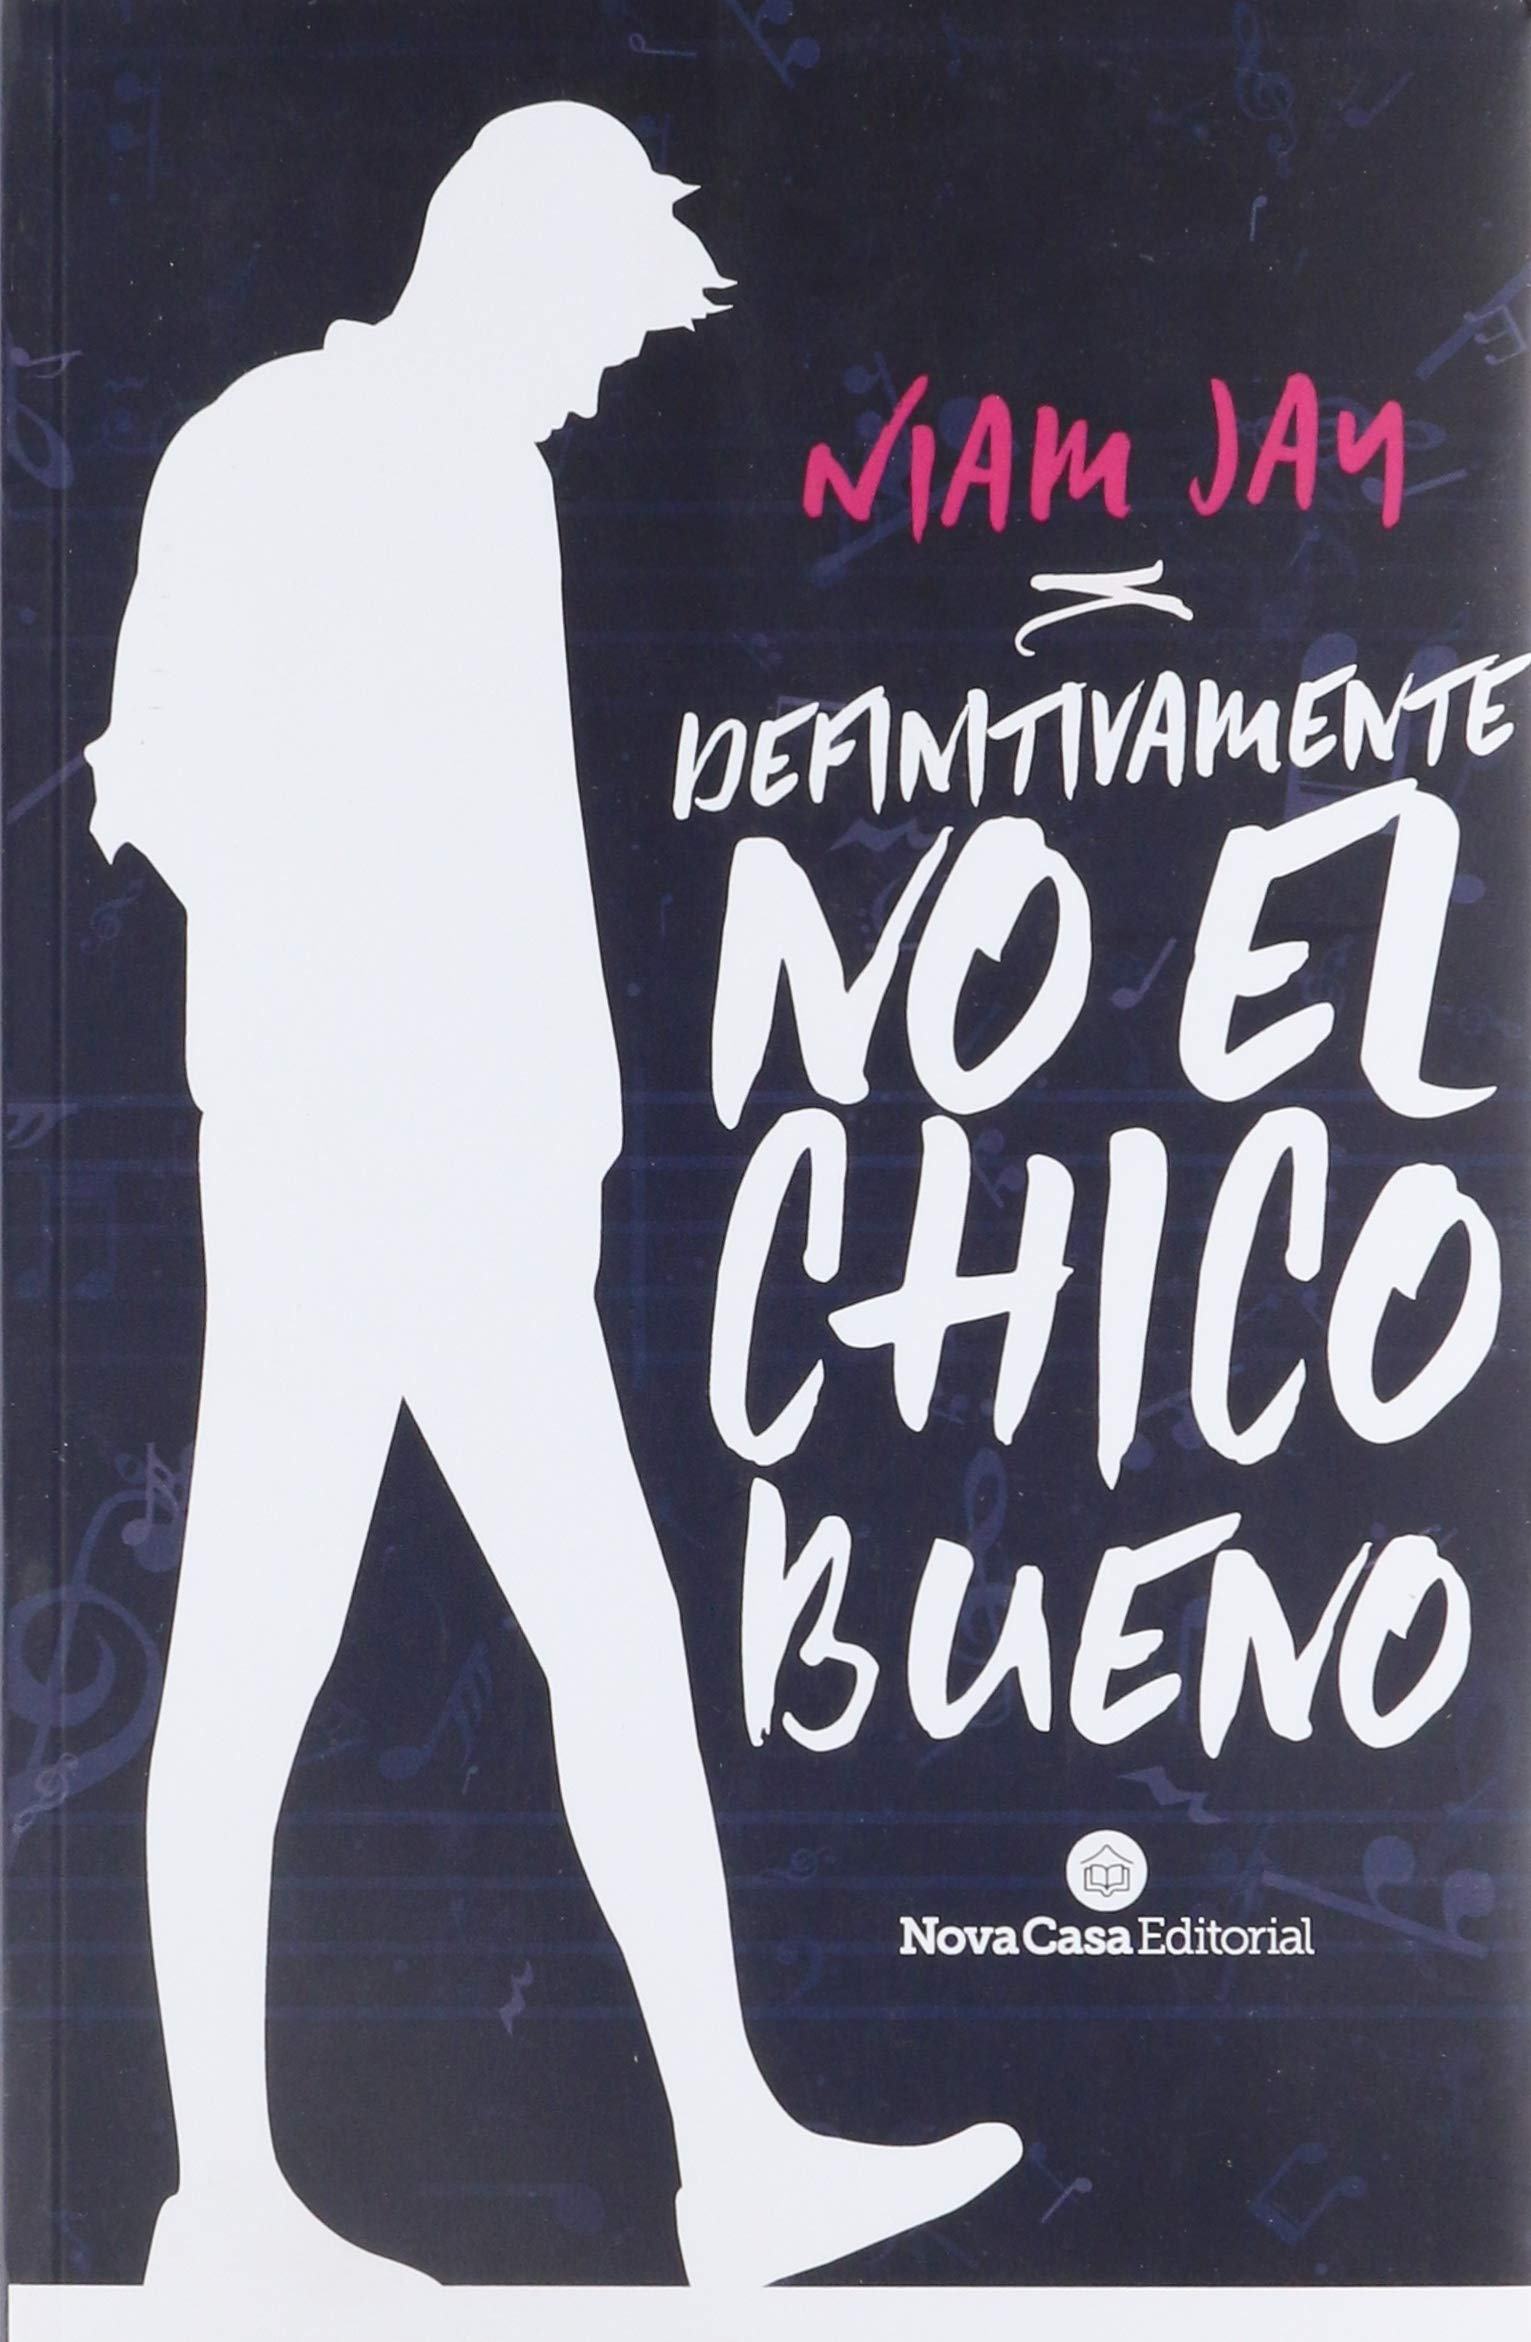 Definitivamente no el chico bueno: Amazon.es: Jay, Niam: Libros